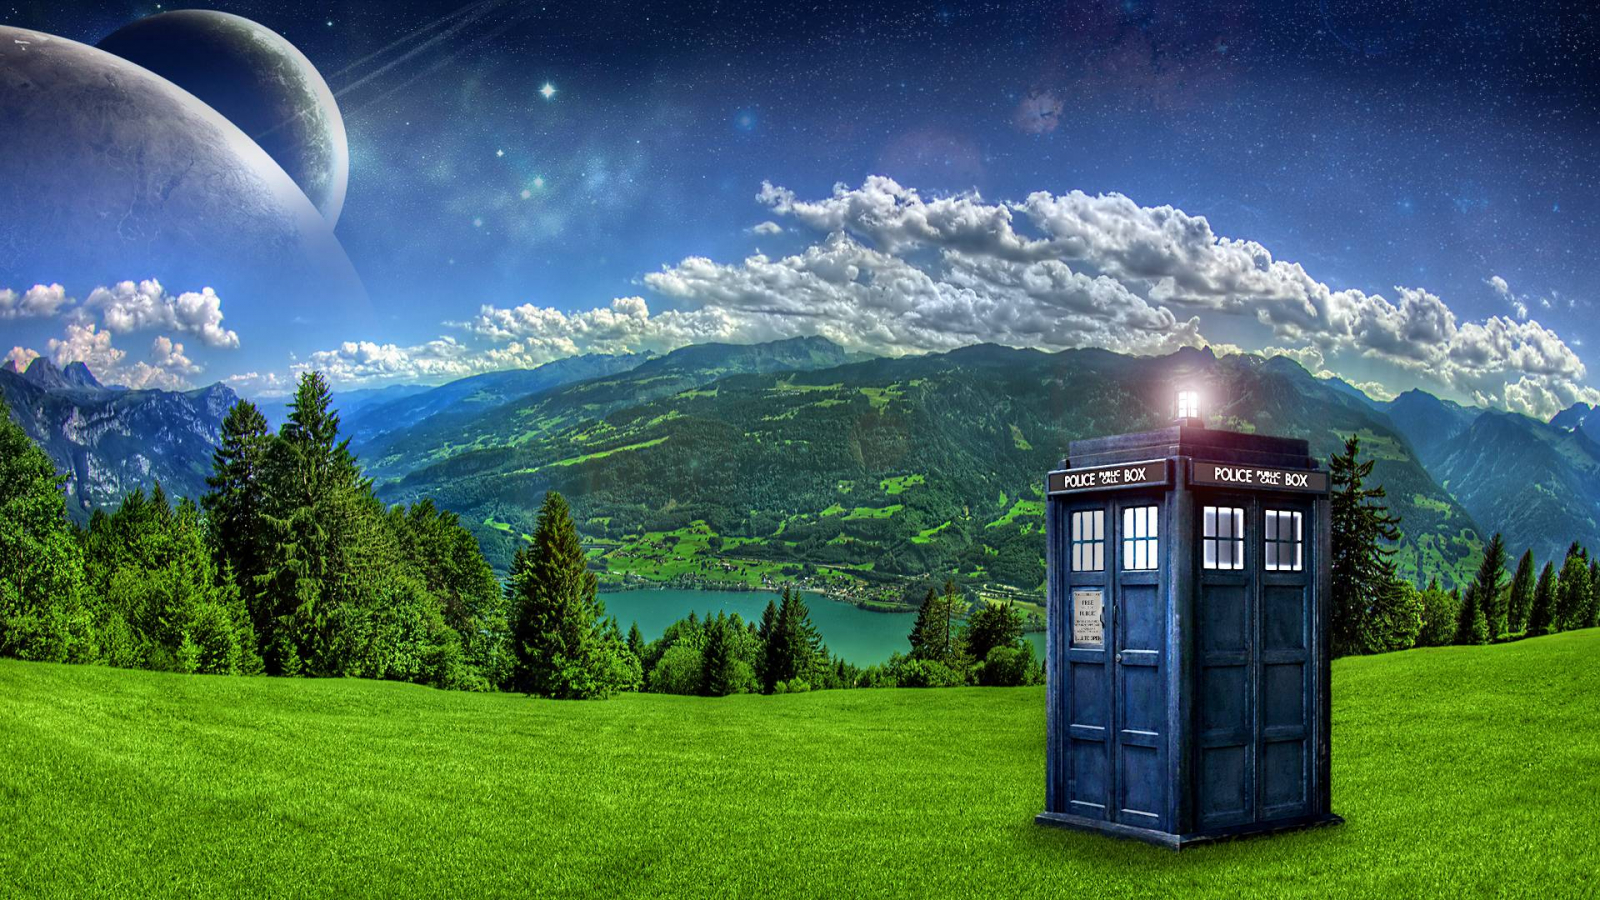 1920x1080px tardis desktop wallpaper - wallpapersafari